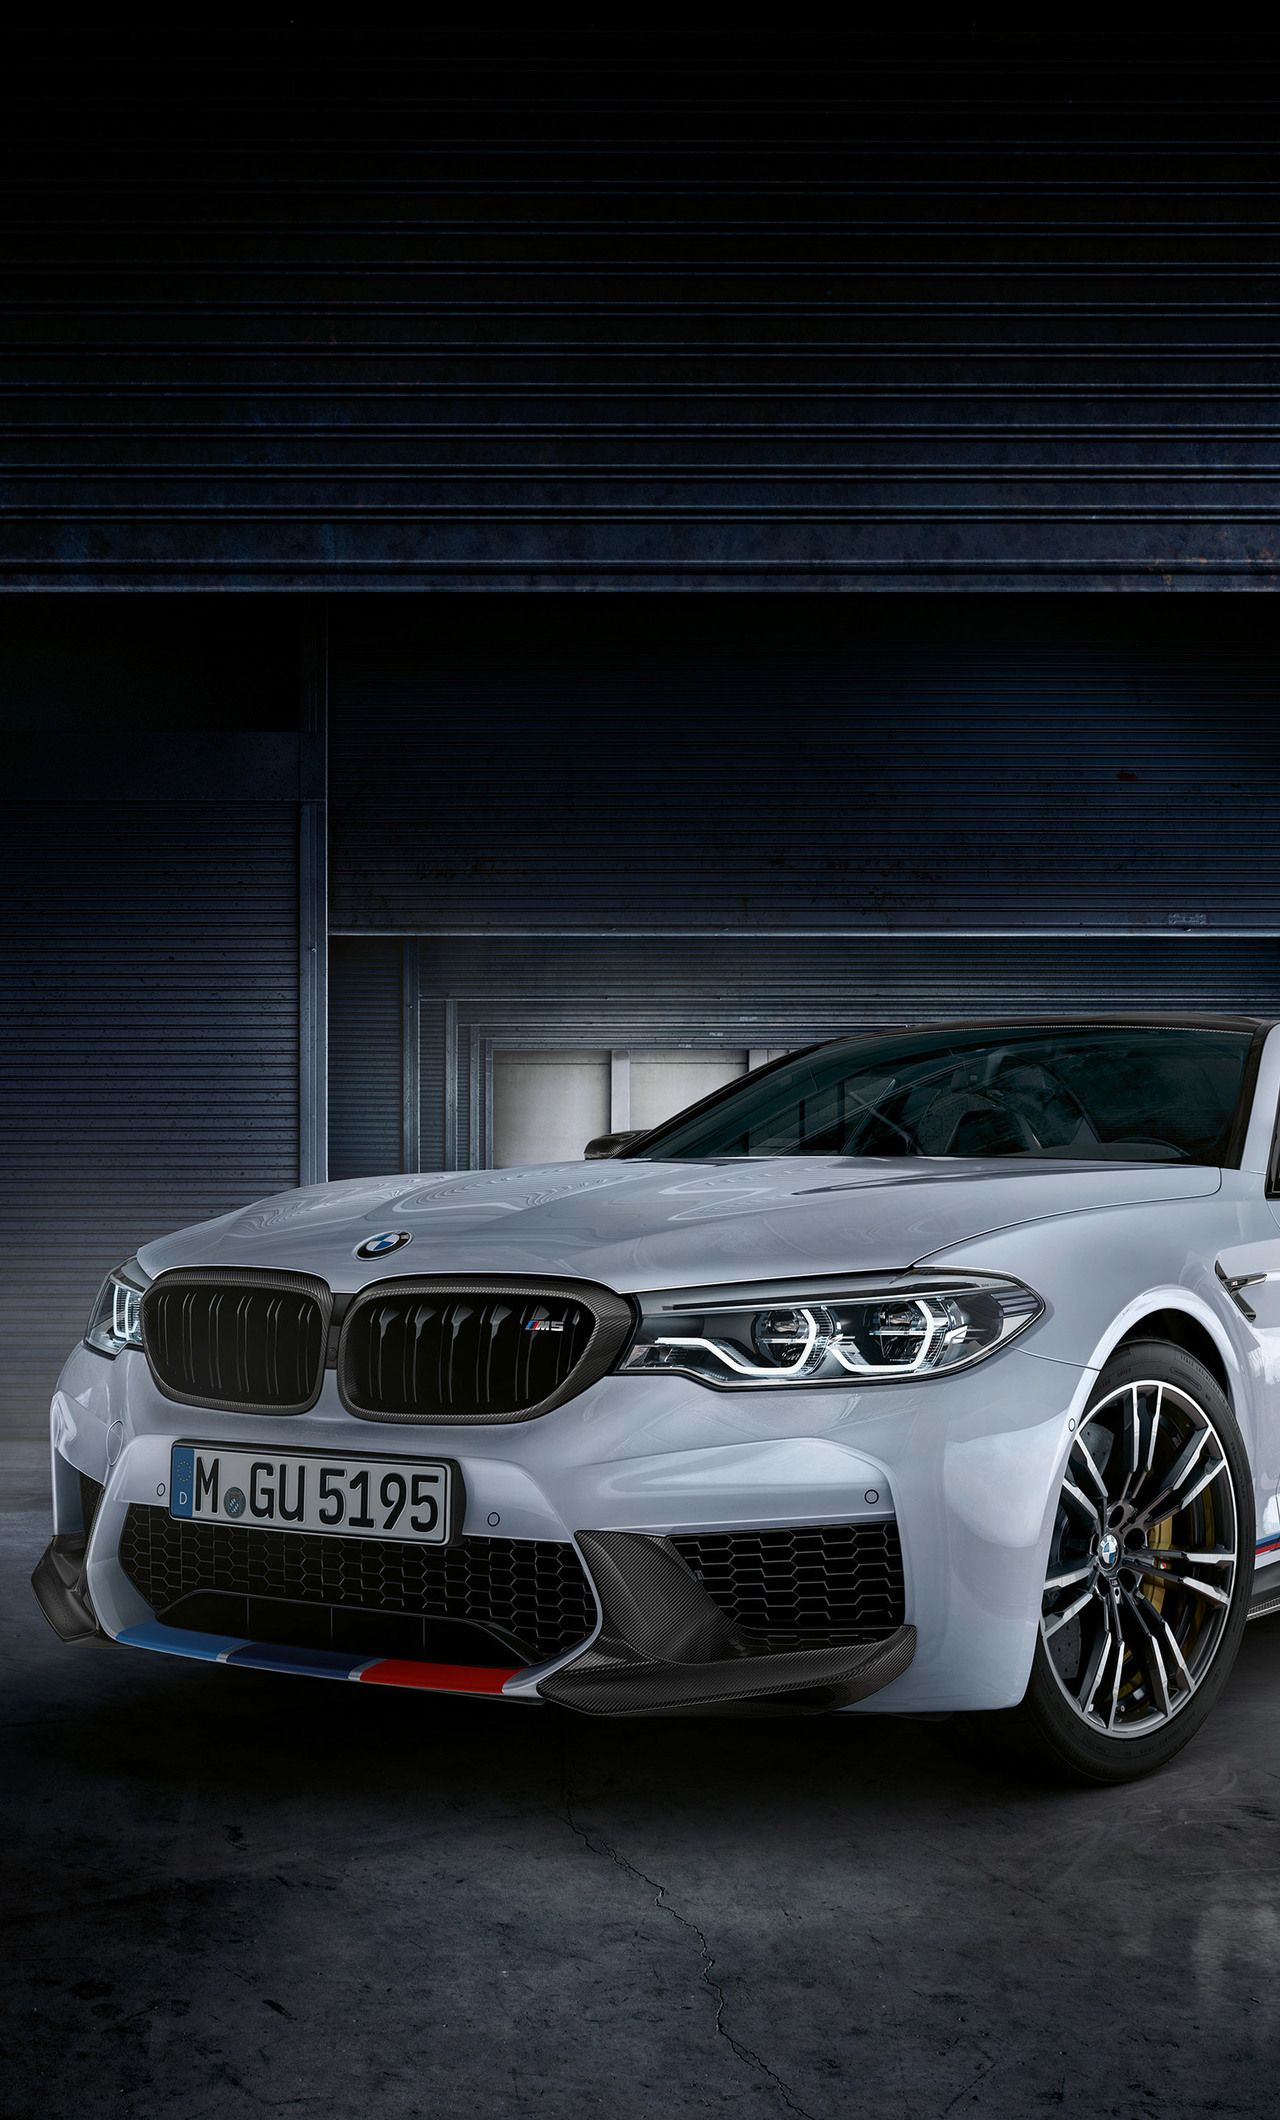 Bmw M5 Wallpaper 4k Iphone